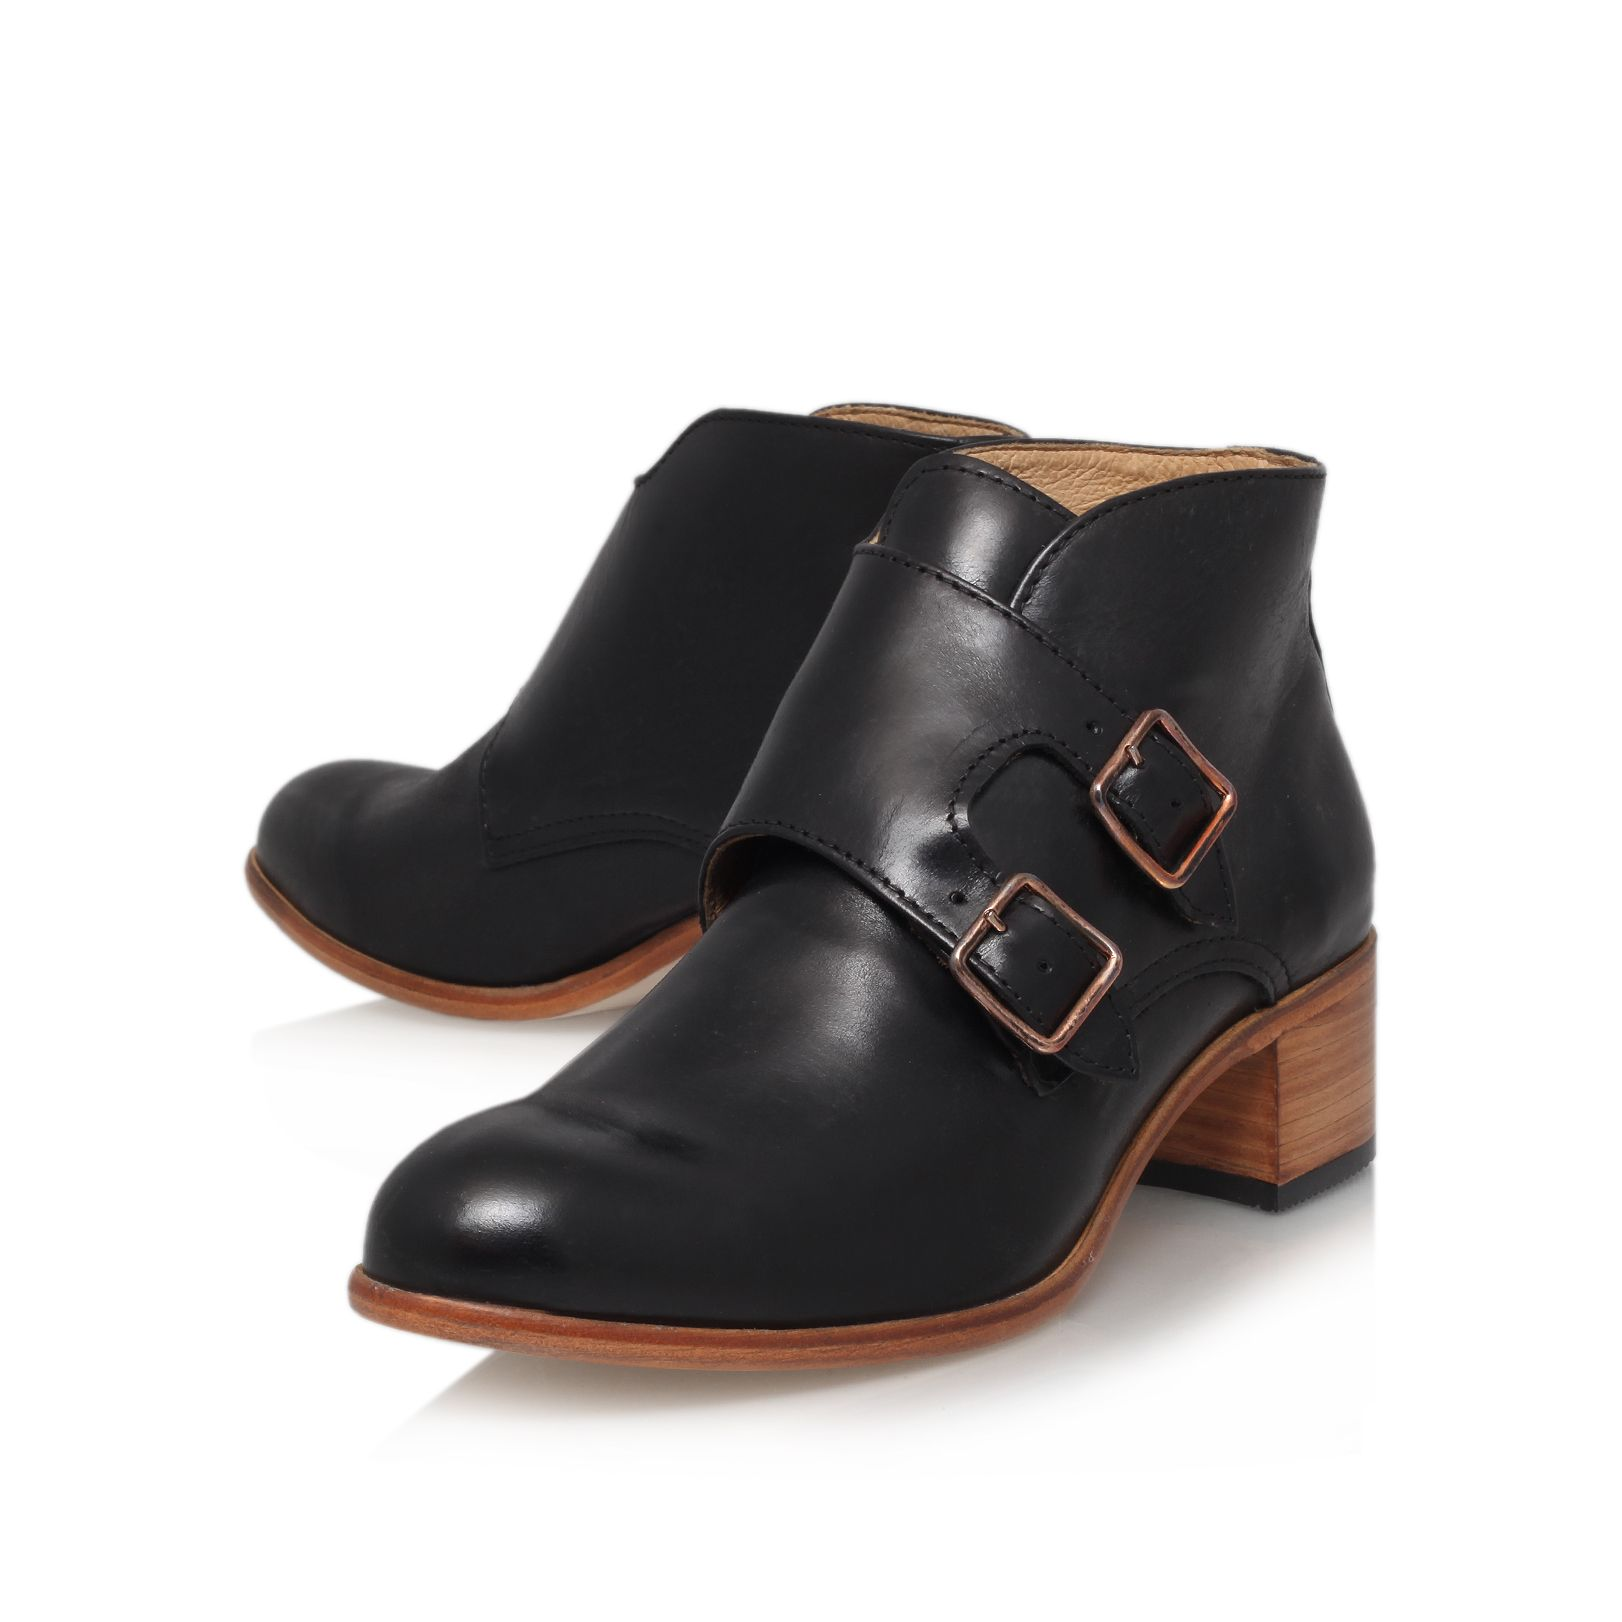 Elliot low heel boots